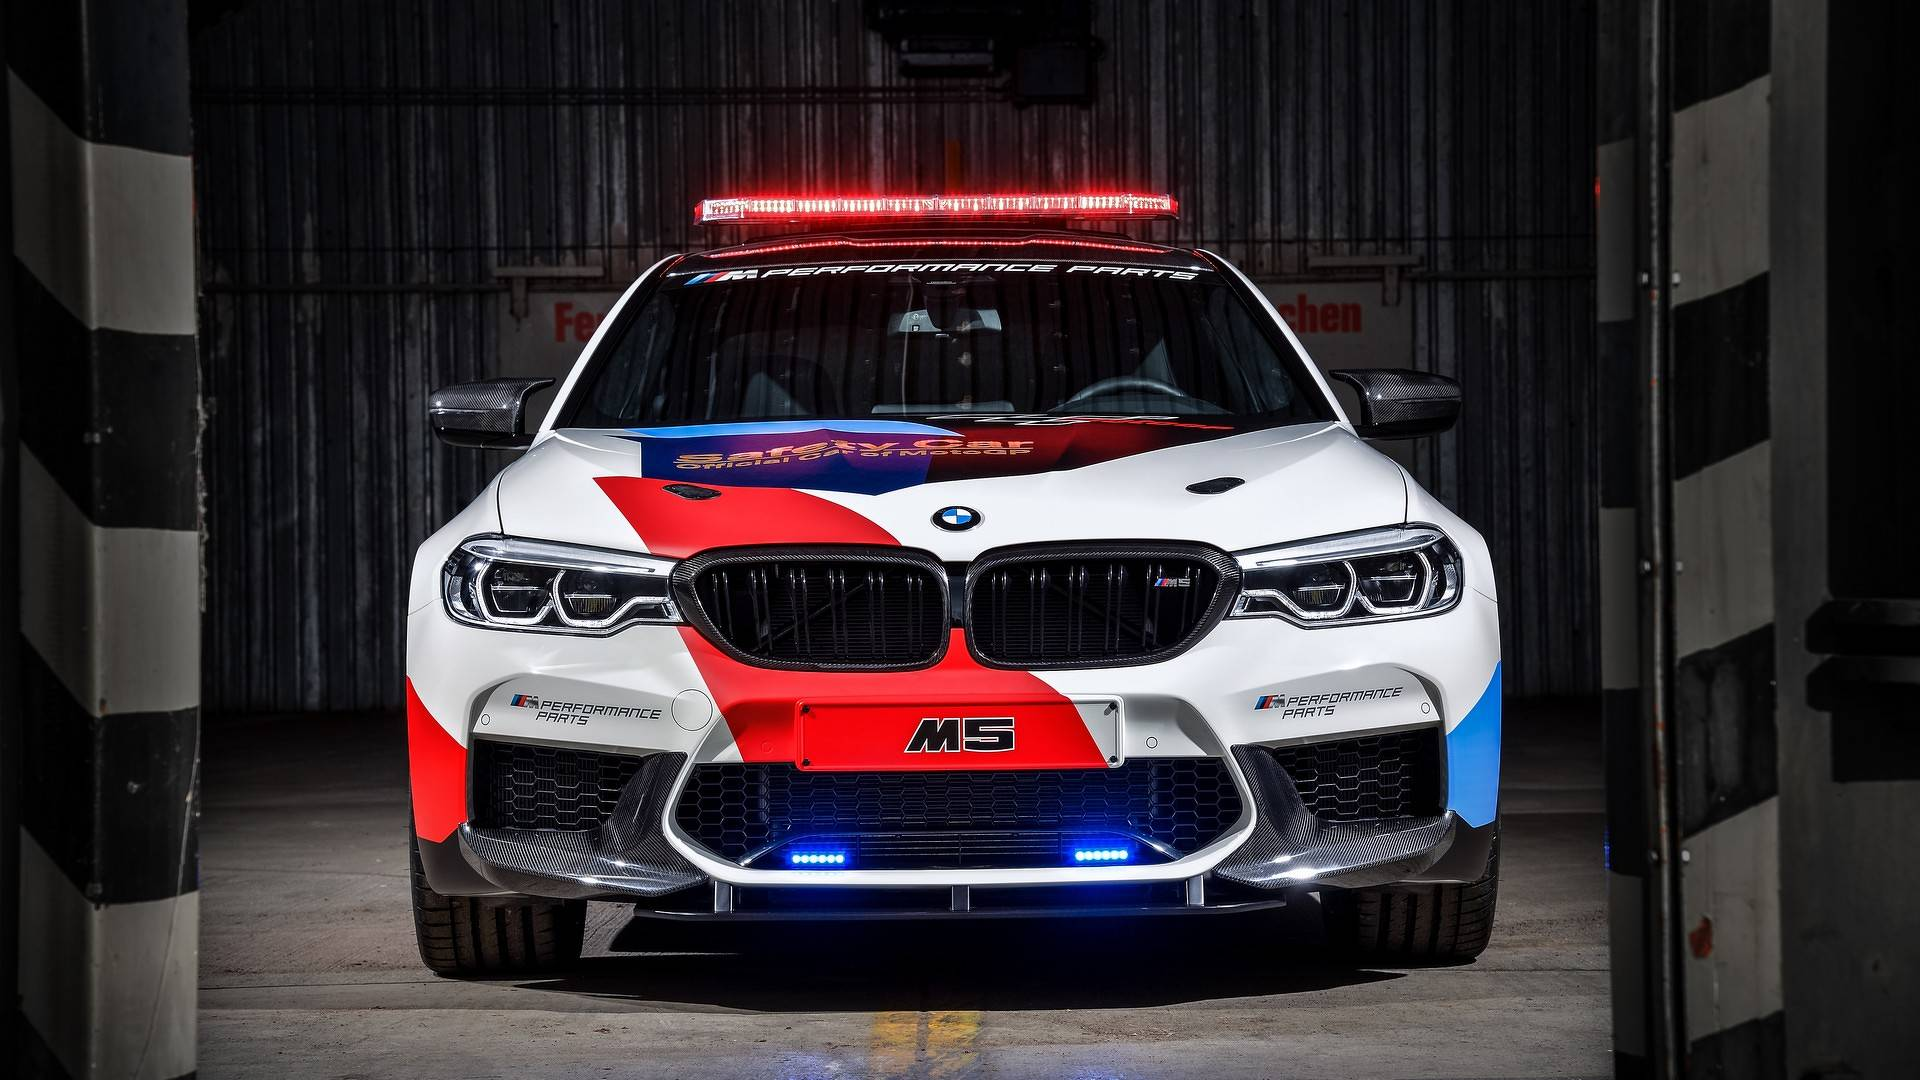 bmw-m5-motogp-safety-car (6)